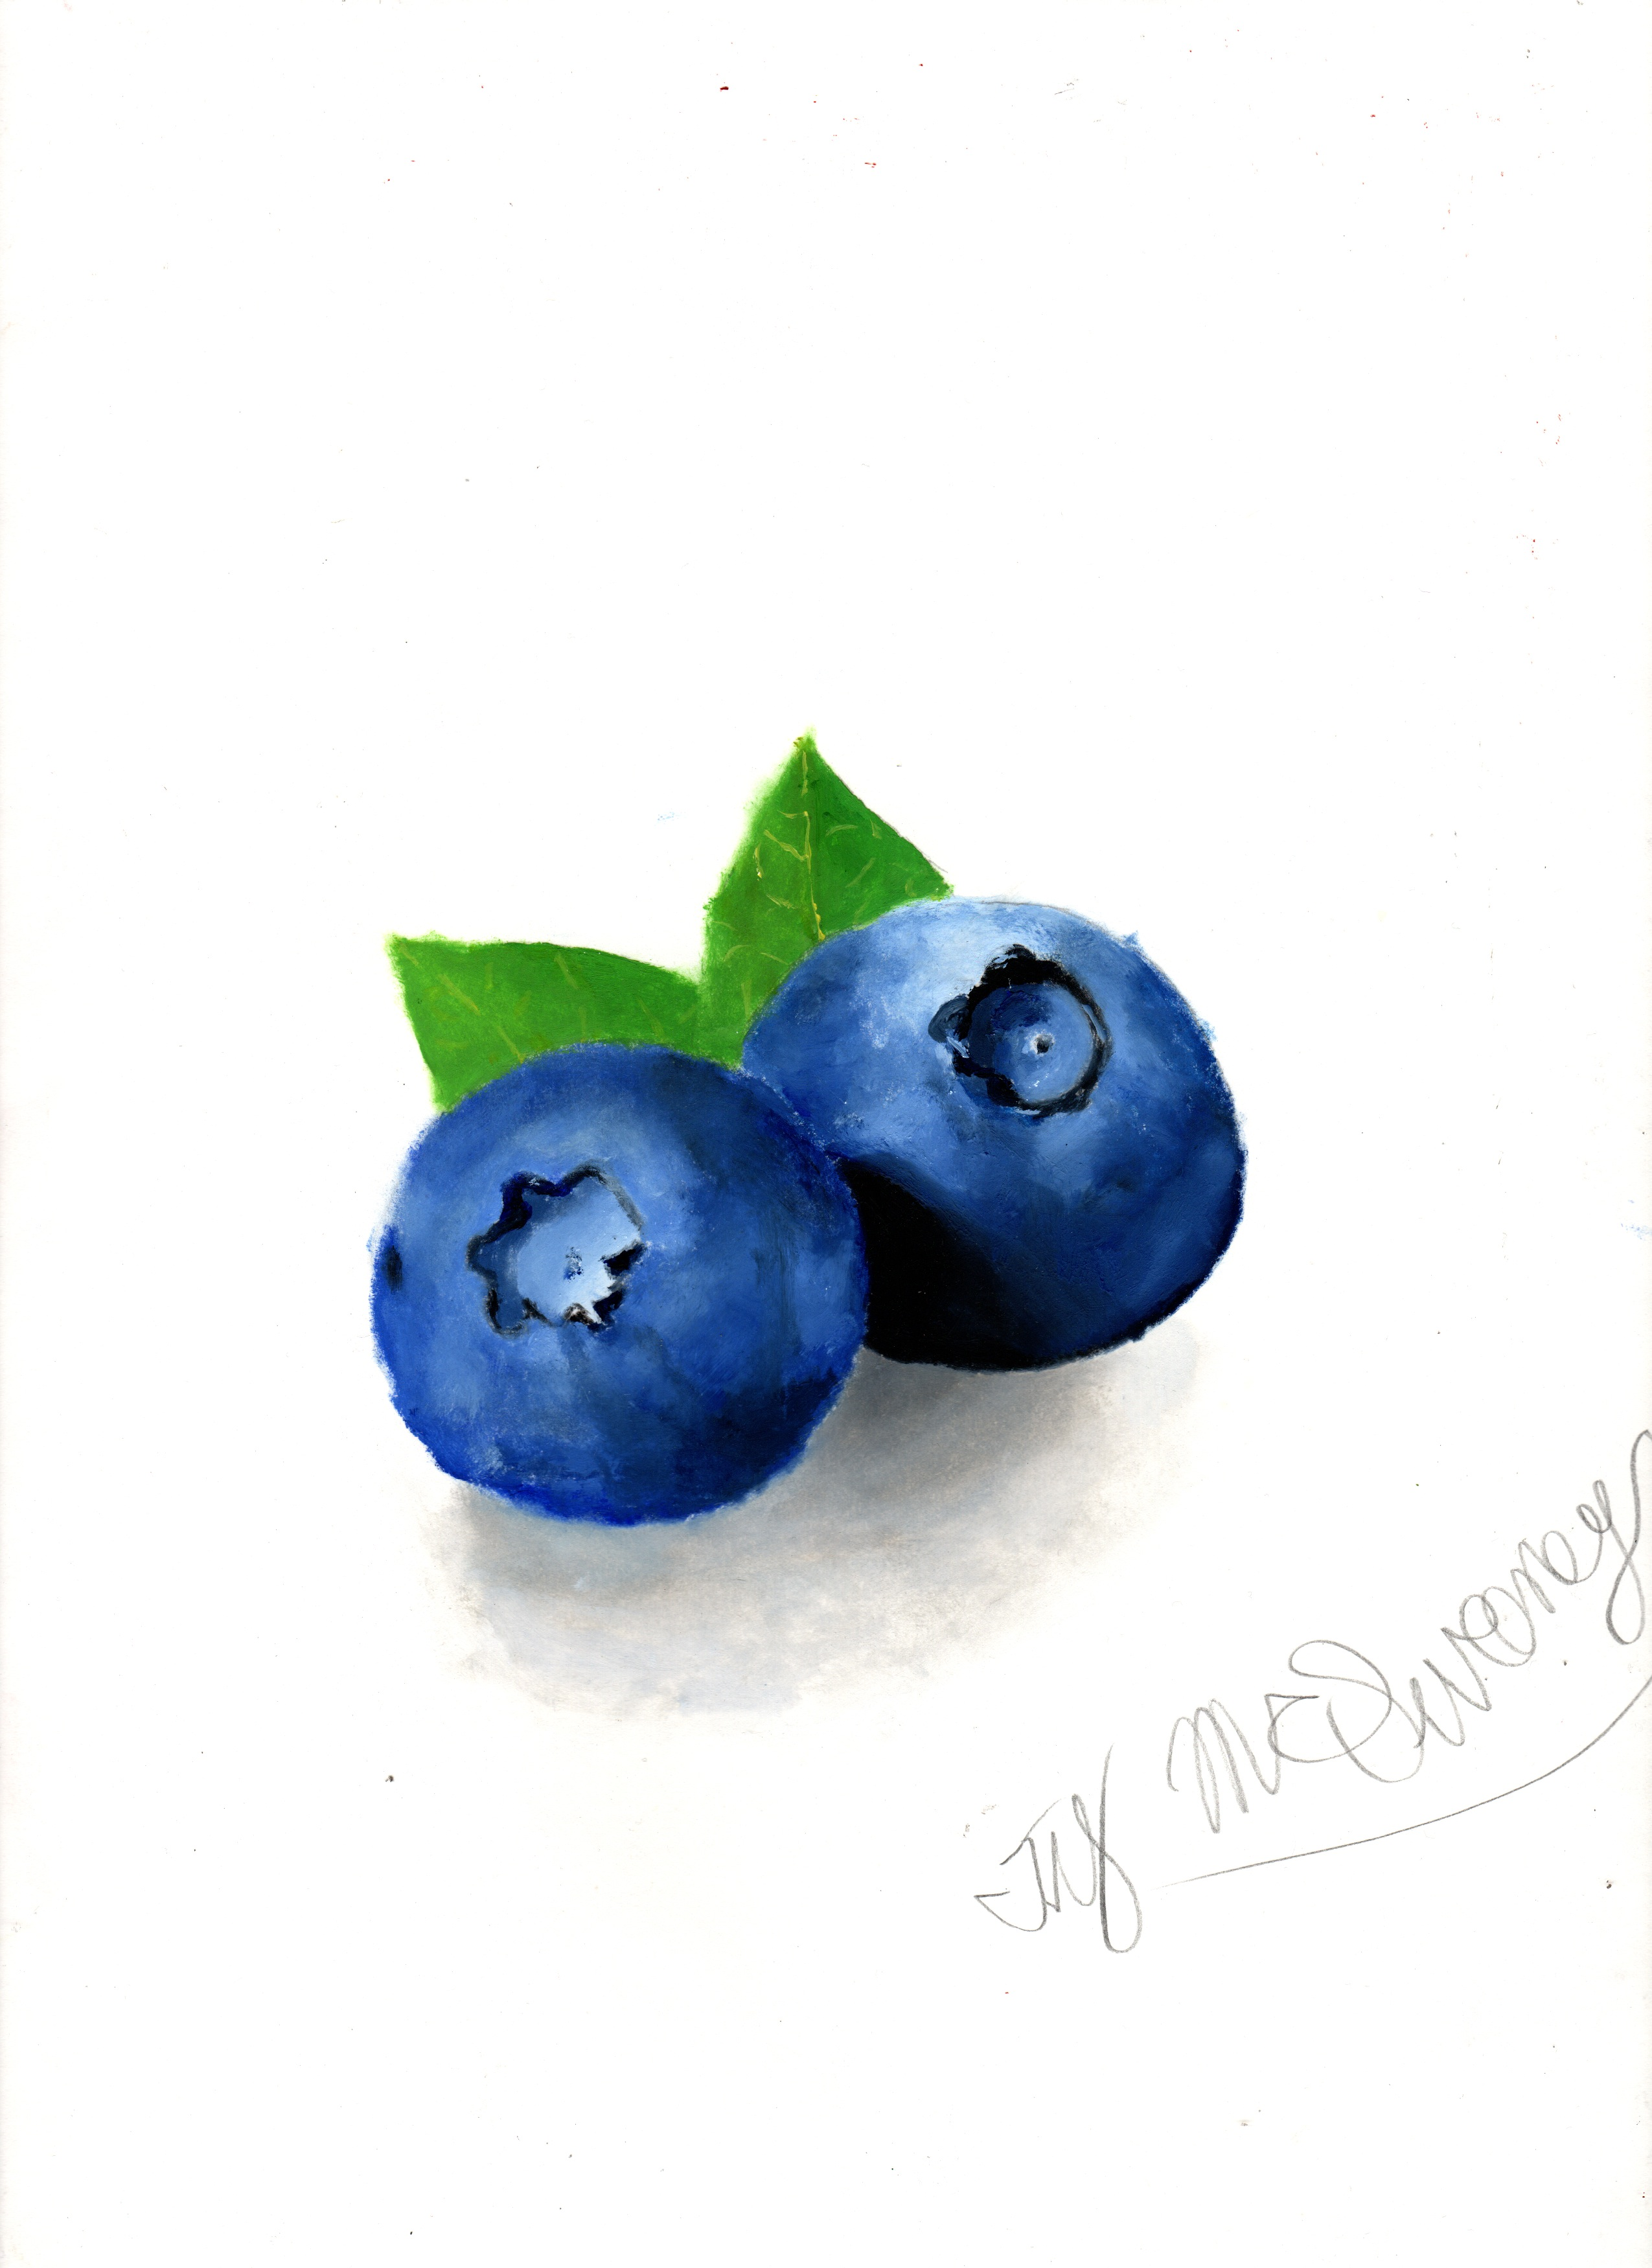 Tyler McSweeney_Blue Berries.jpeg